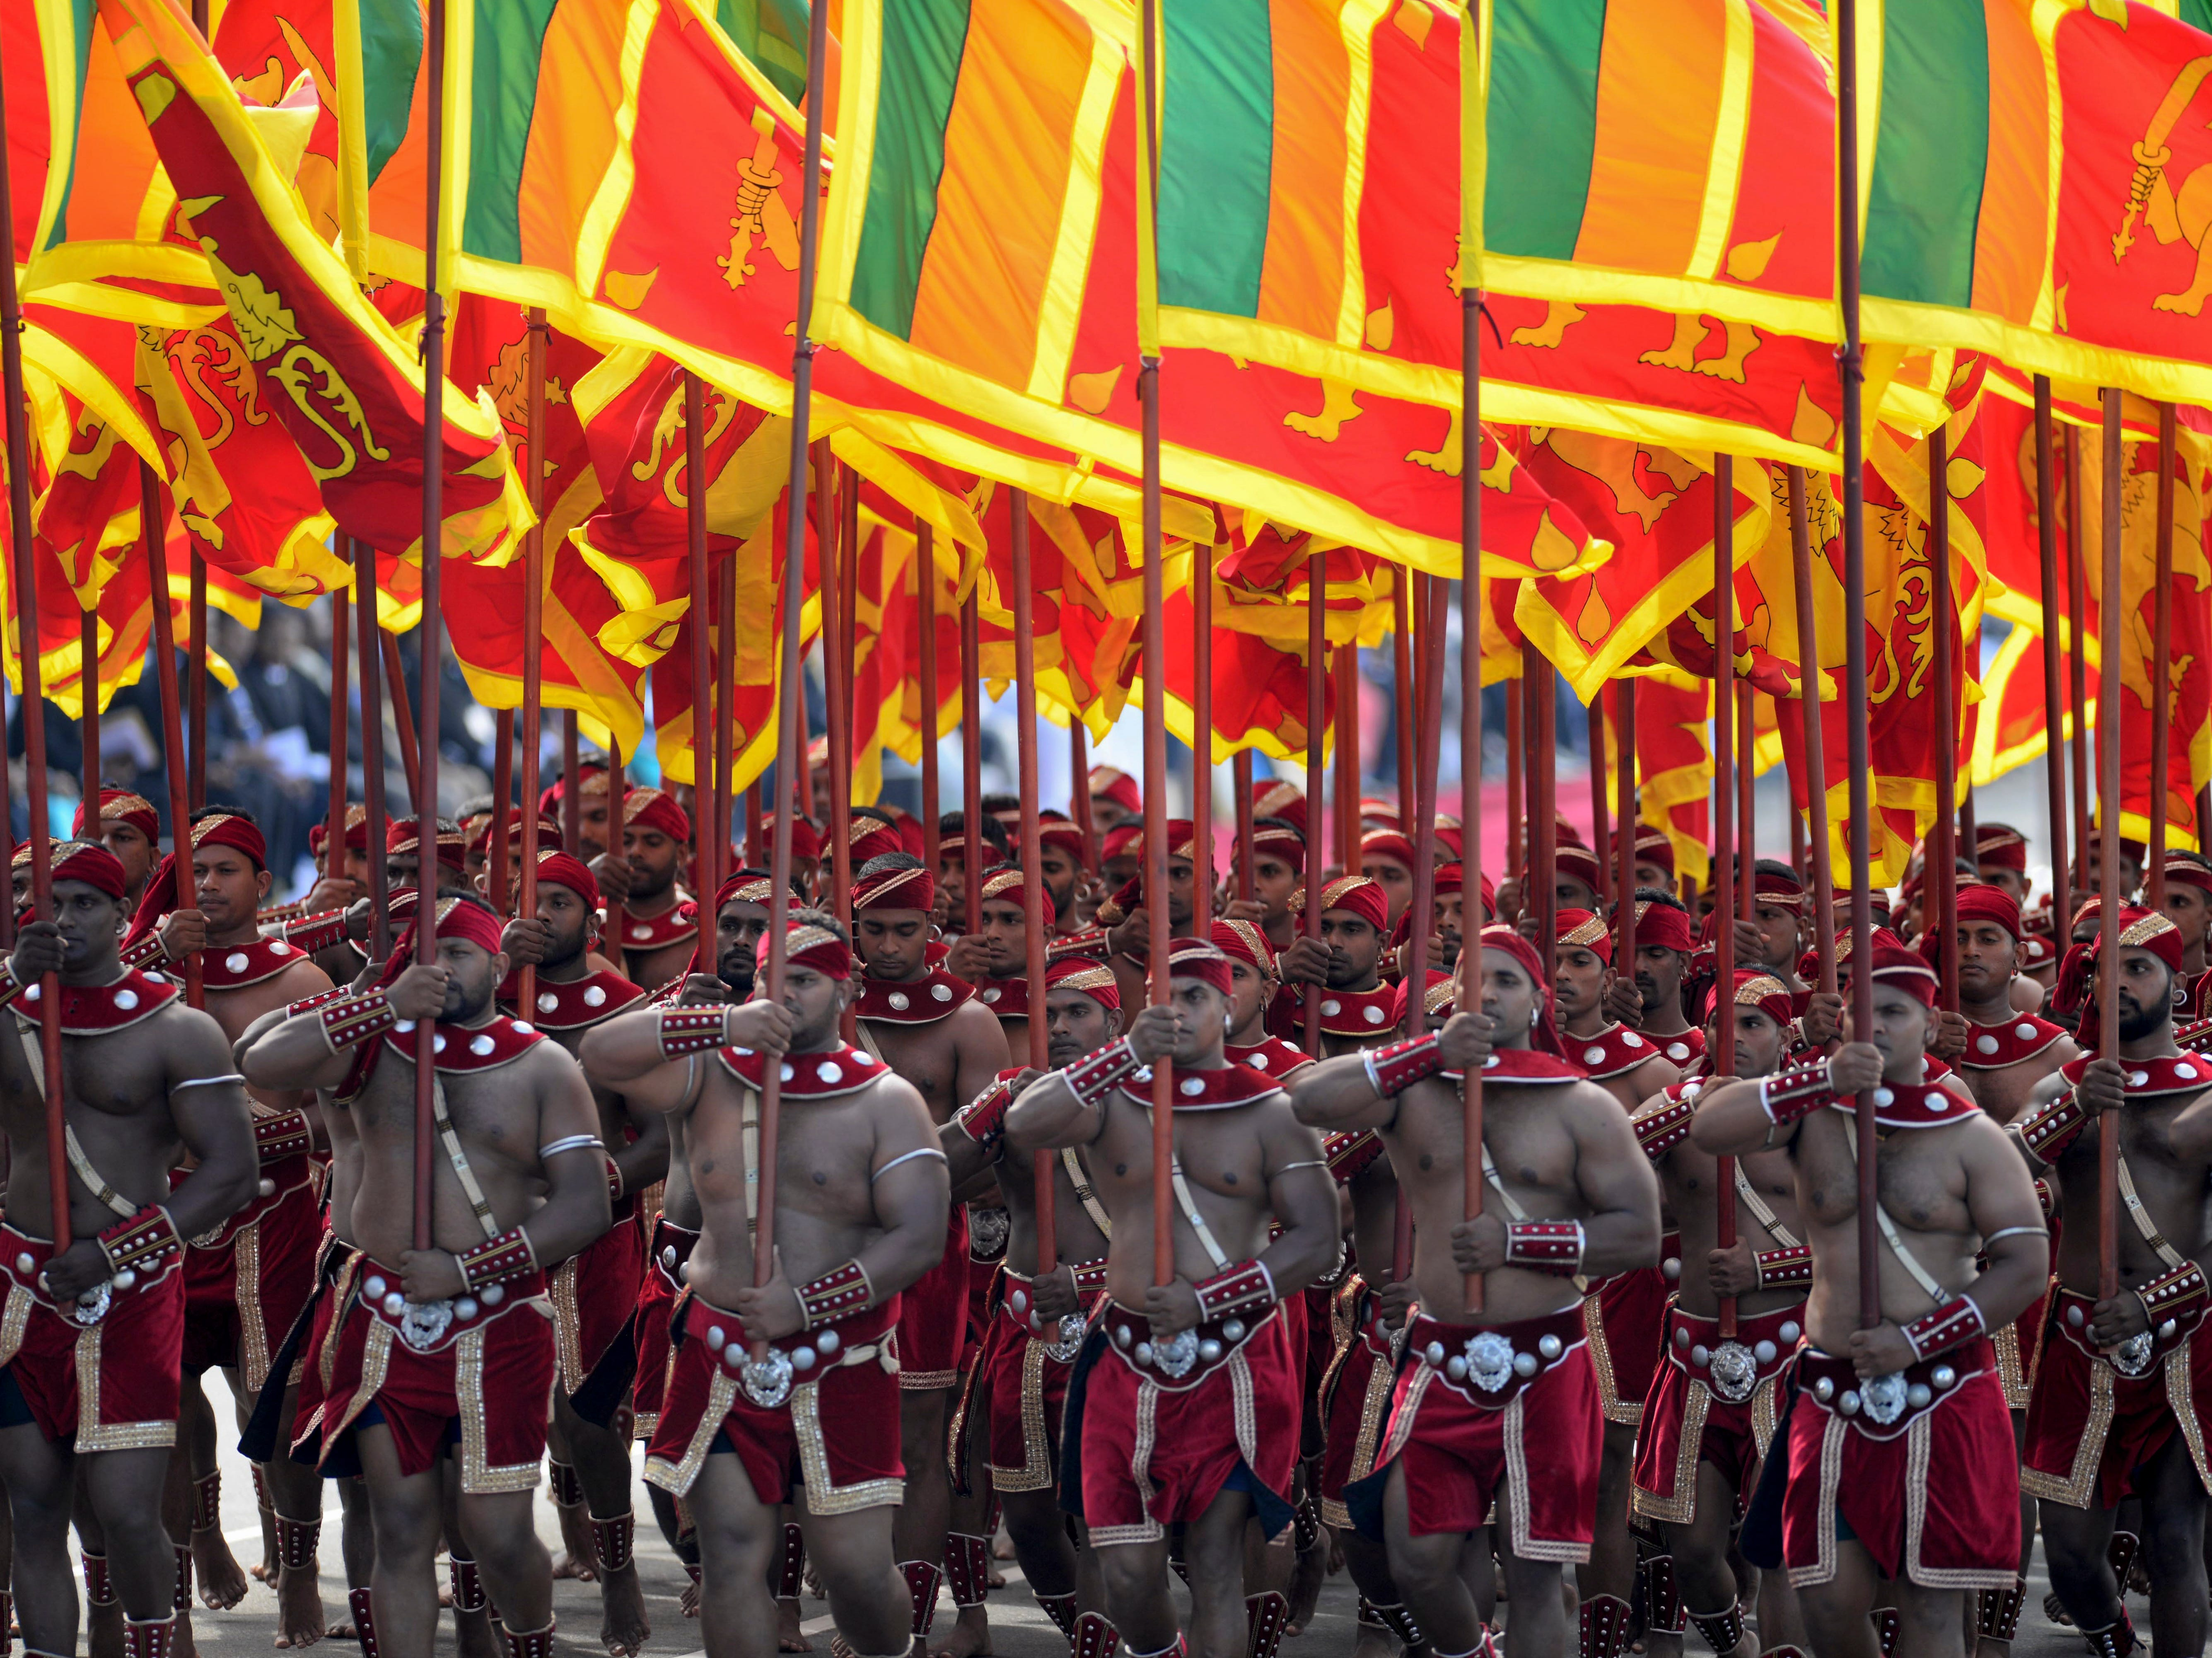 Sri Lankan soldiers march holding their national flag during a parade marking the country's 71st independence anniversary from British colonial rule in Colombo, Sri Lanka, Monday, Feb. 4, 2019.